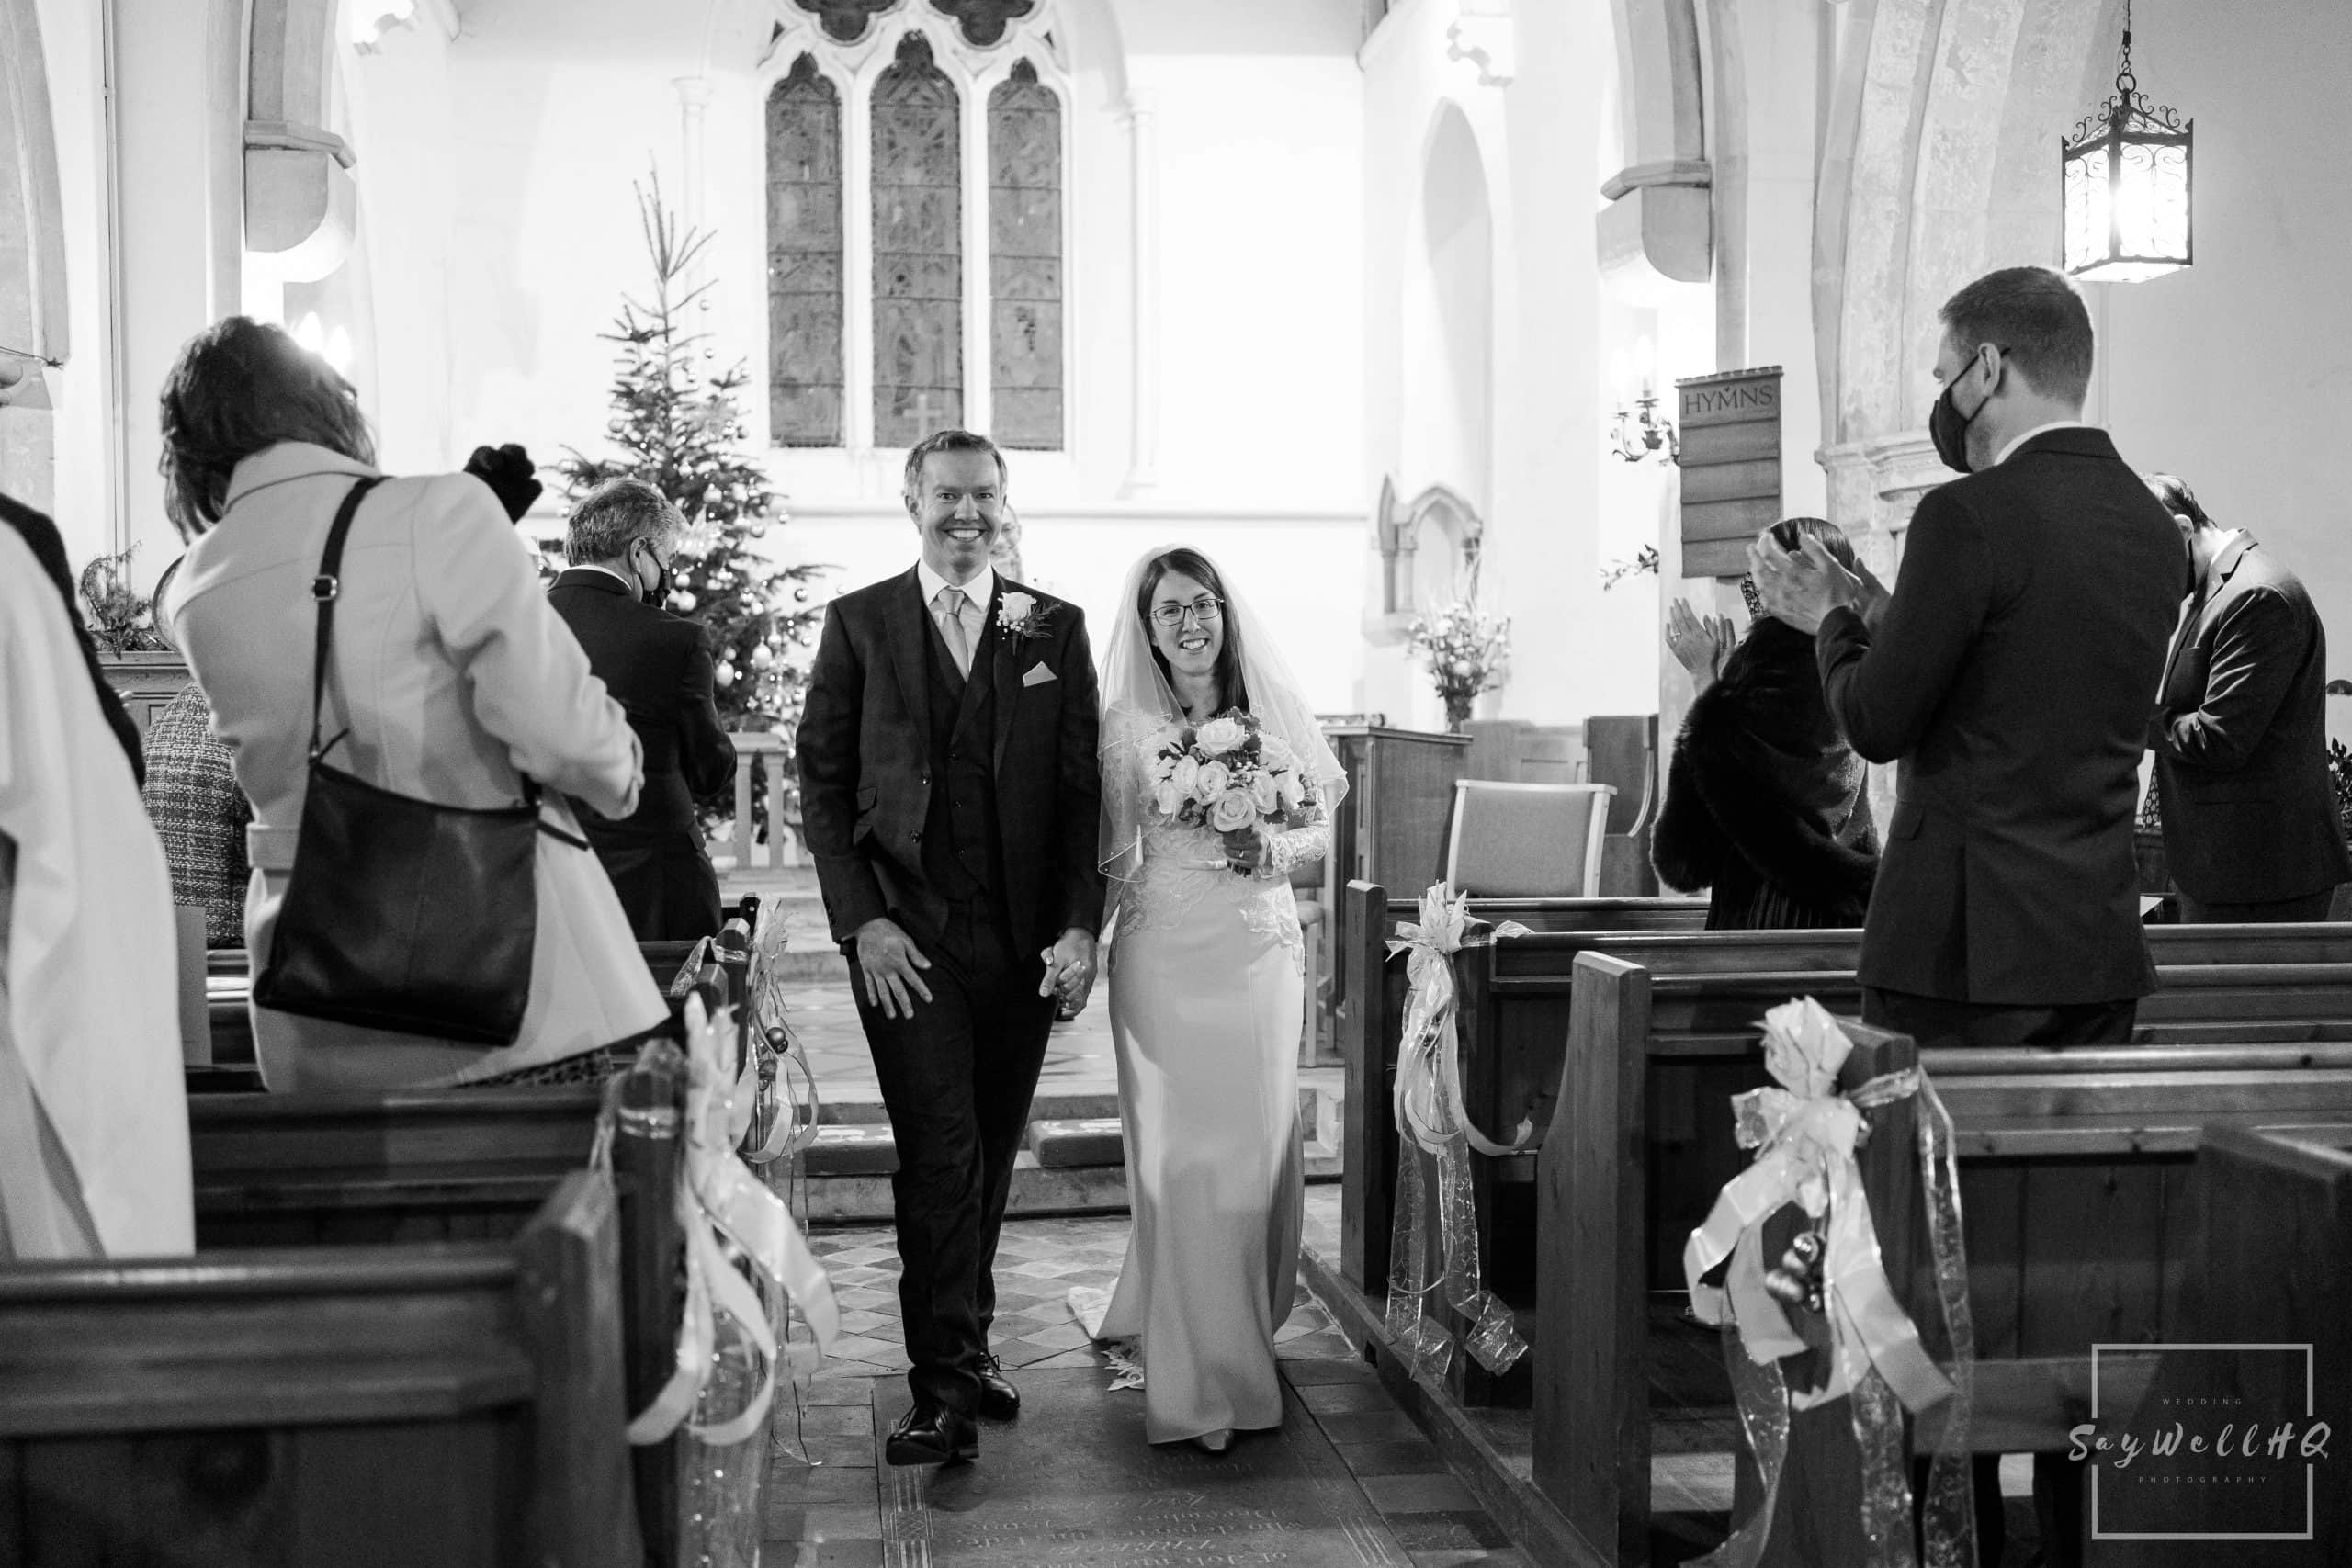 Bride and Groom walking back down the Aisle as husband and wife at St. Helena Church in Thoroton - Vale of Belvoir wedding photography